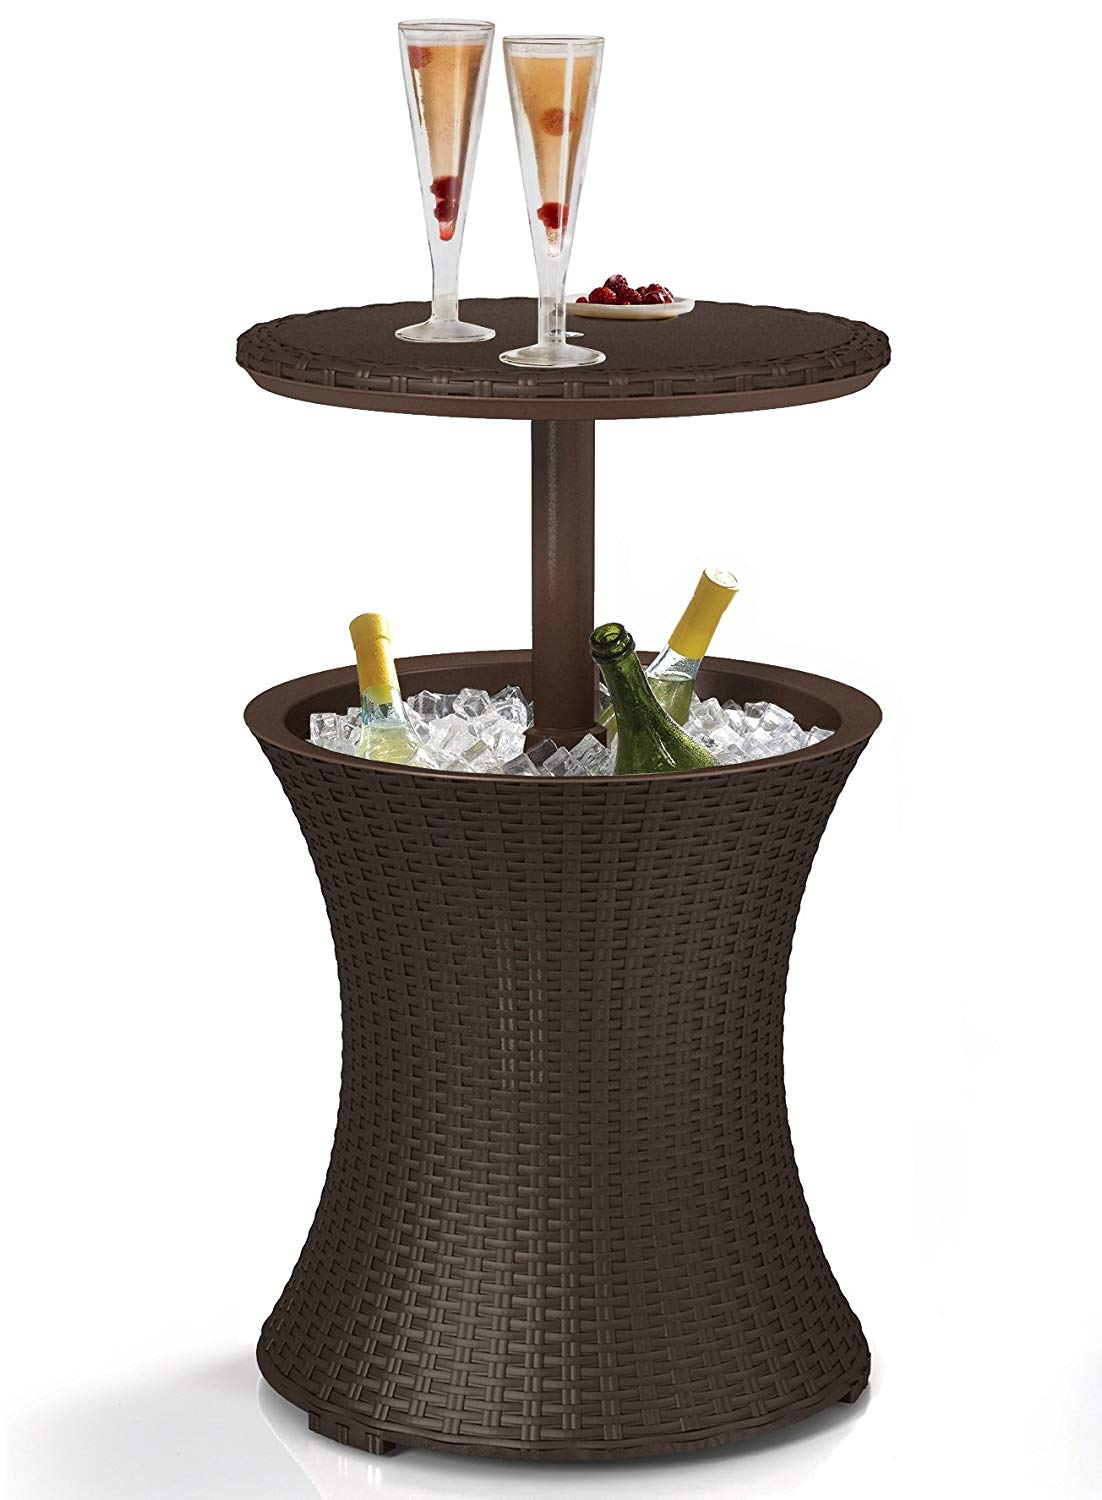 keter gal cool bar rattan style outdoor patio pool side table beverage cooler brown wicker garden bedside lamps white modern accent mid century furniture mint end mirage mirrored